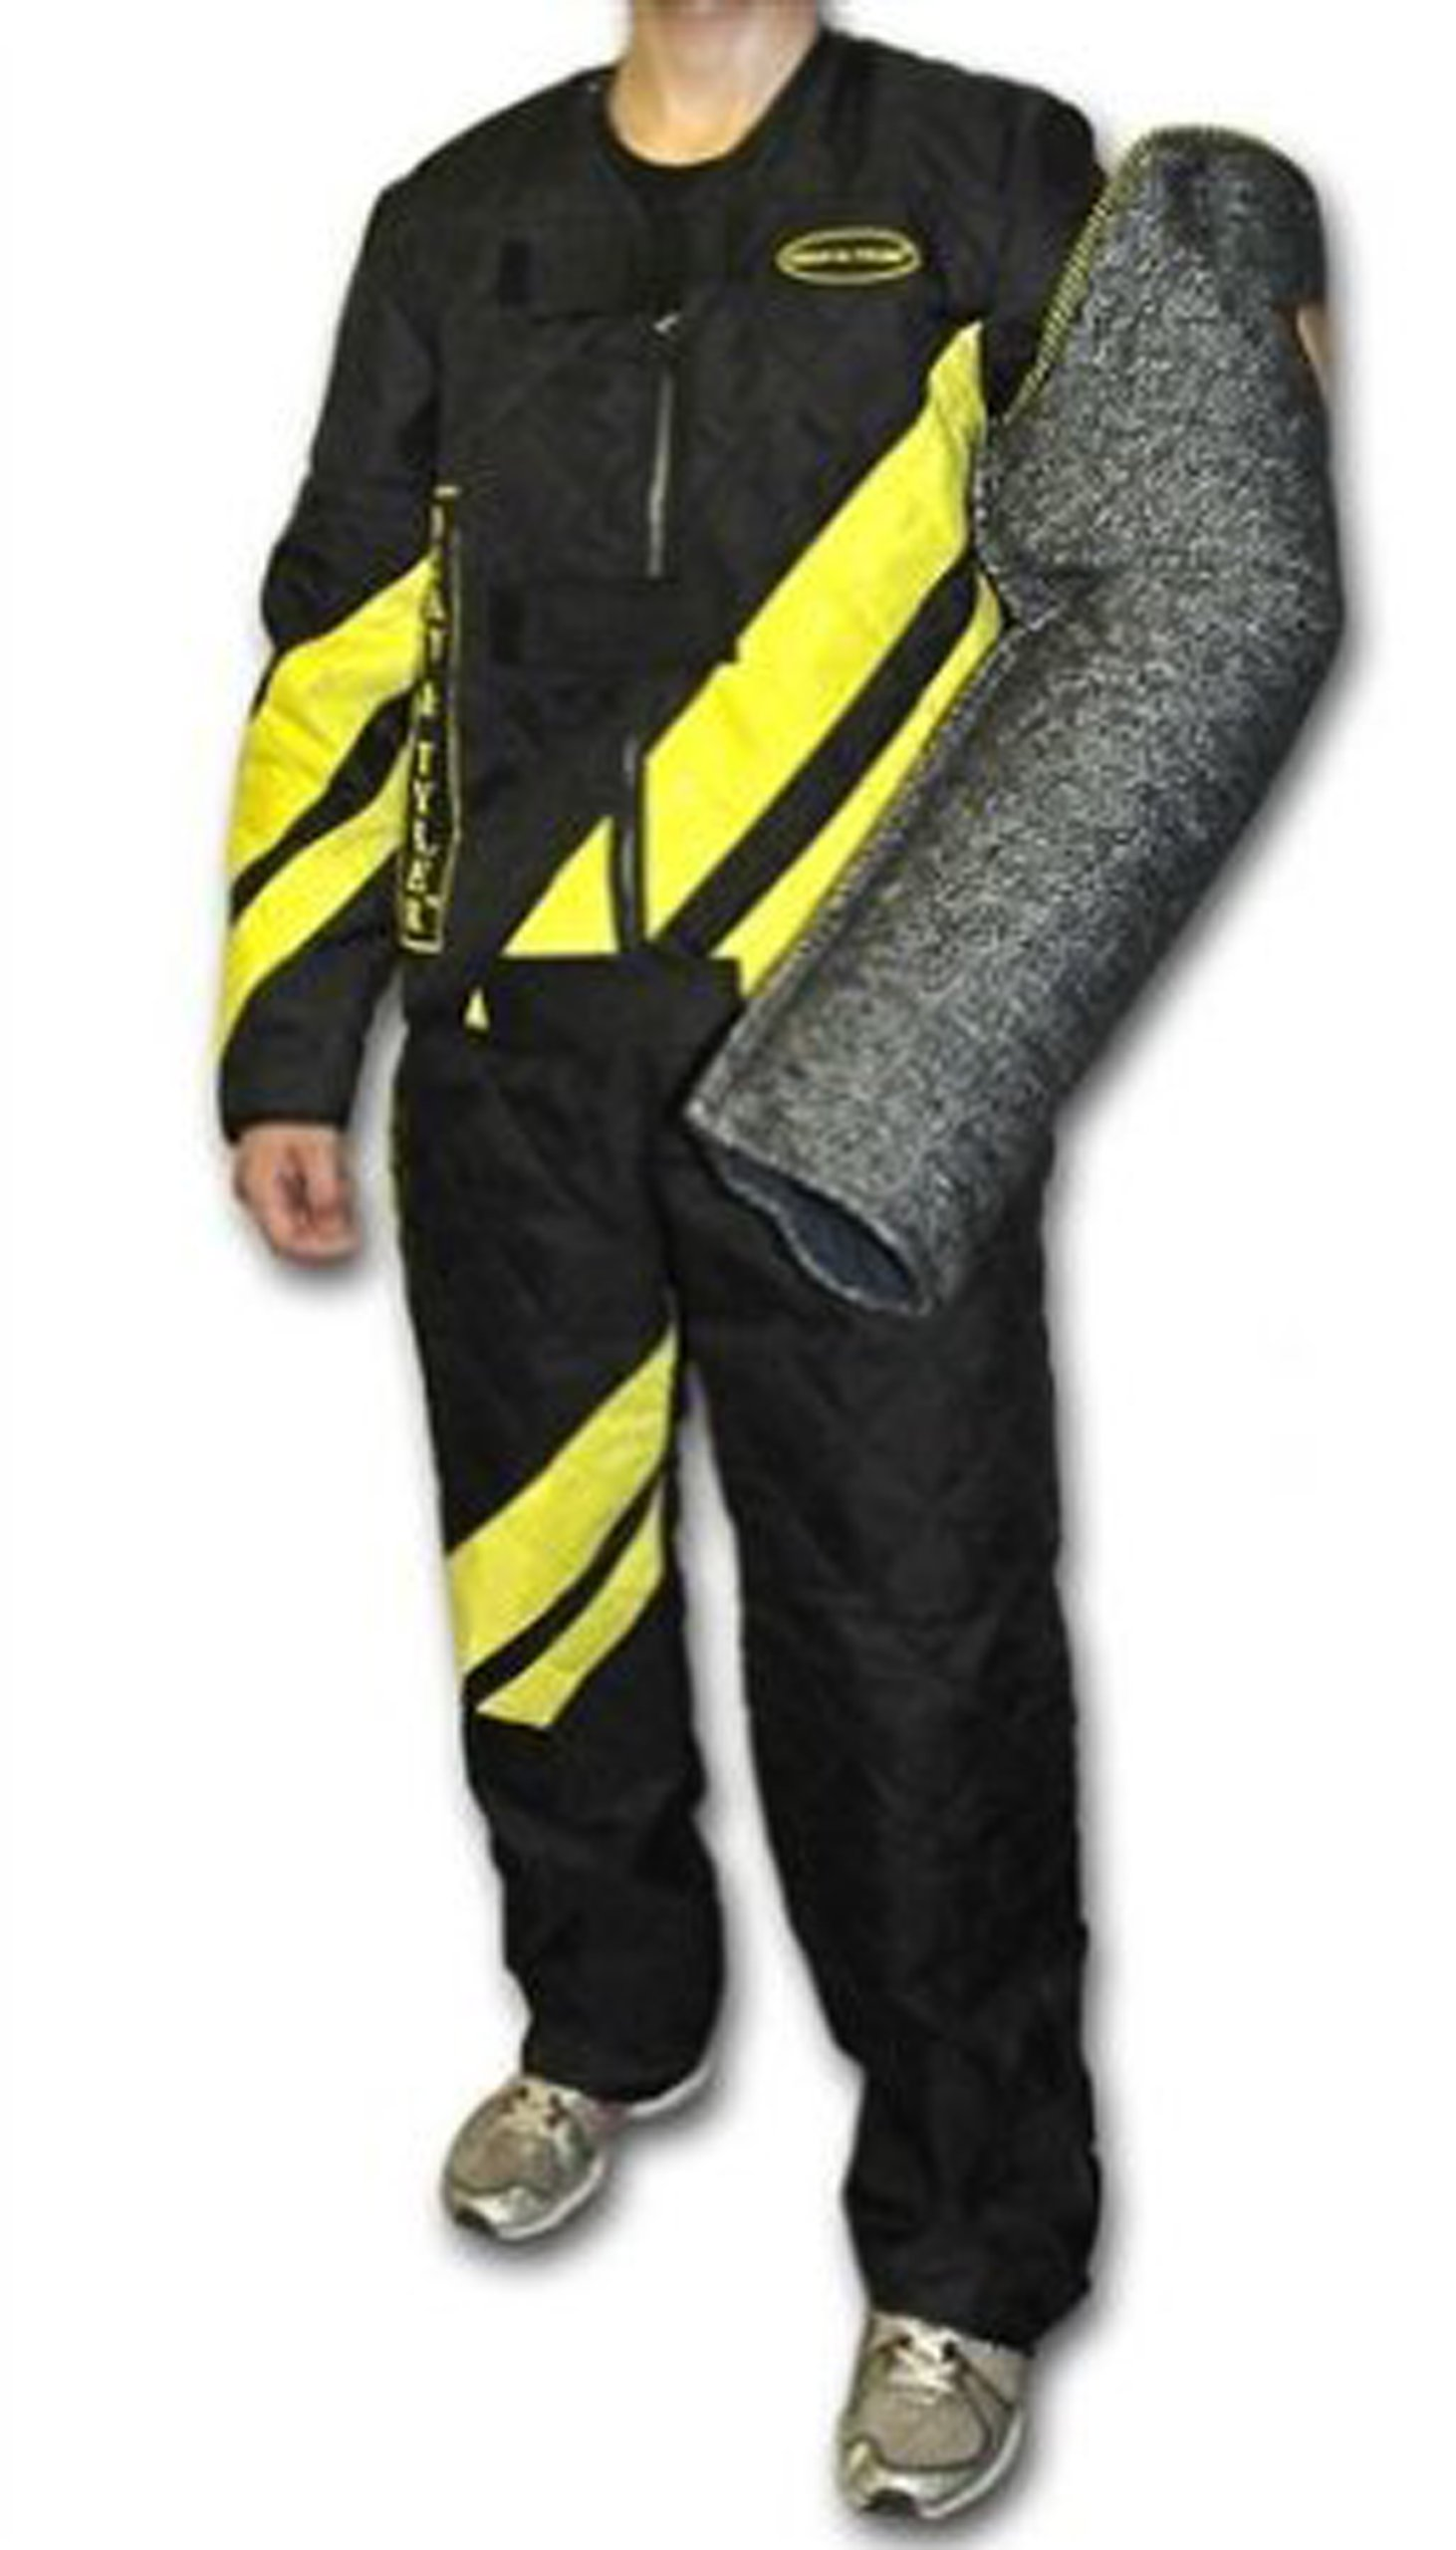 Dean and Tyler Scratch Suit, Neoprene Nylon - Black/Yellow - Size: Large (J: 42-Inch, P: 36-Inch) by Dean & Tyler (Image #1)